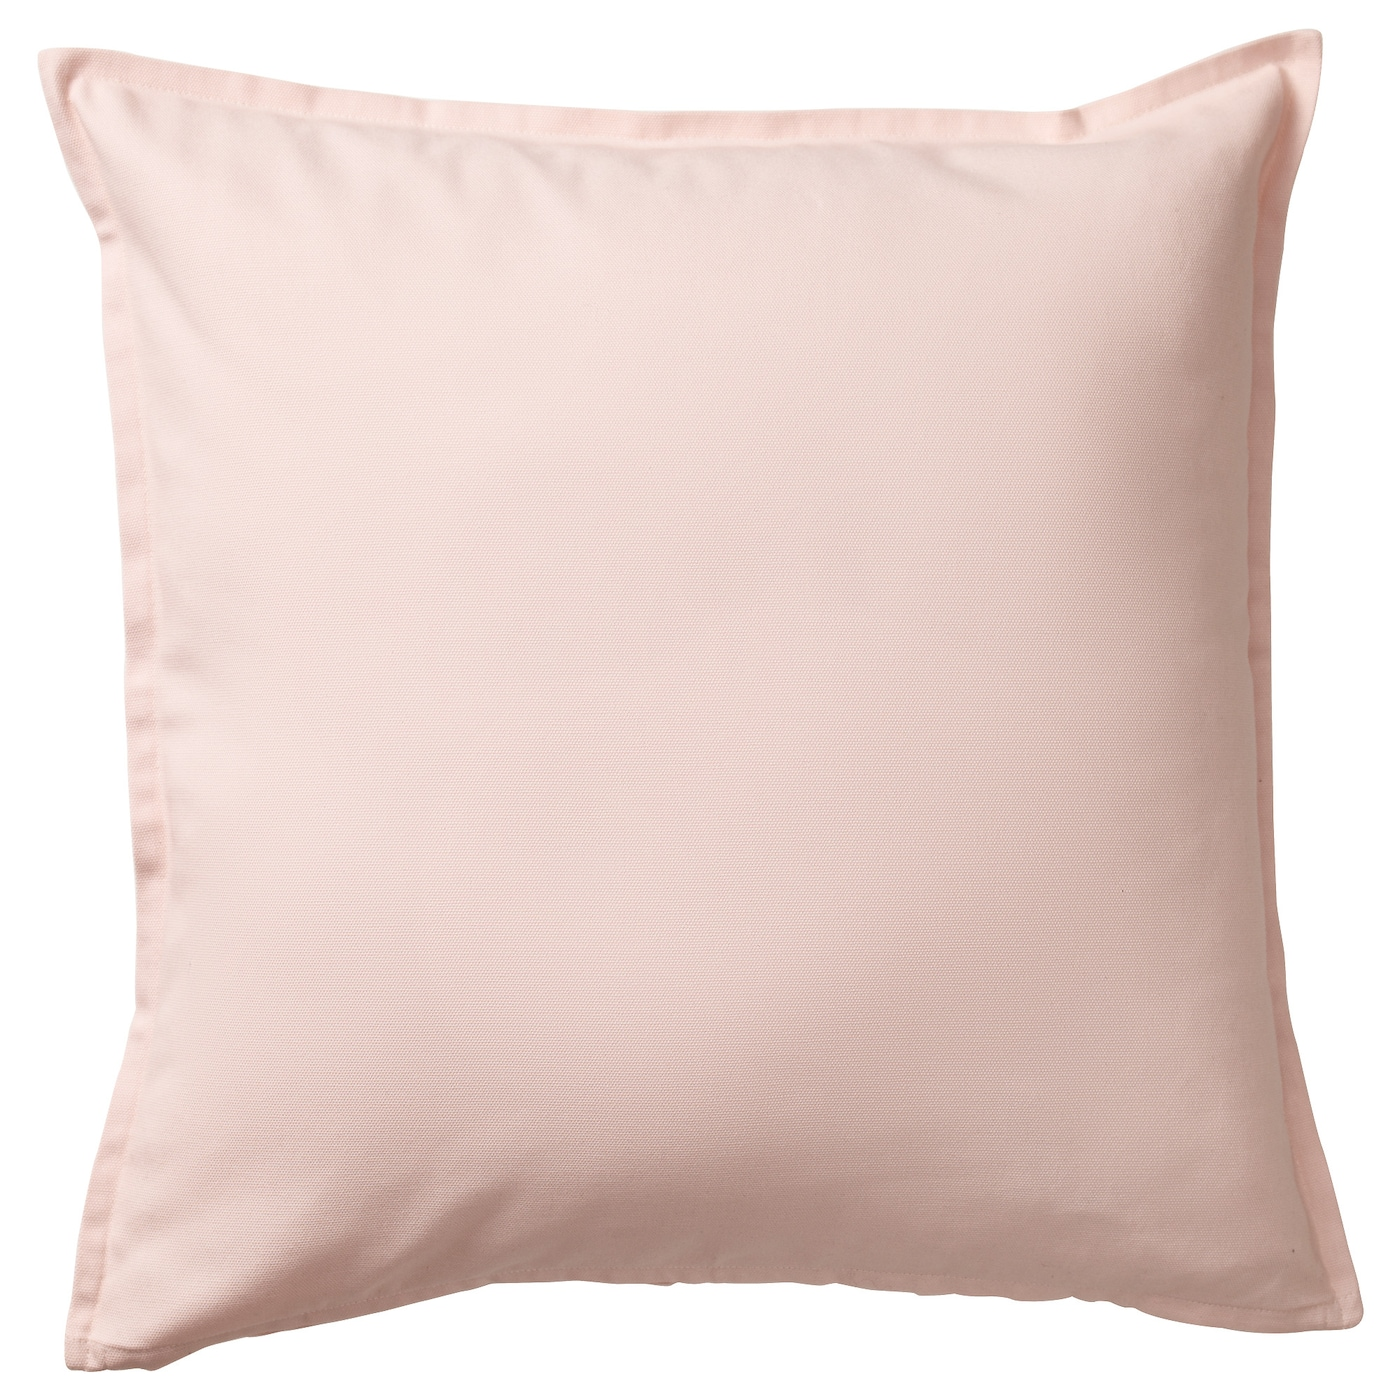 gurli cushion cover light pink 50x50 cm ikea. Black Bedroom Furniture Sets. Home Design Ideas